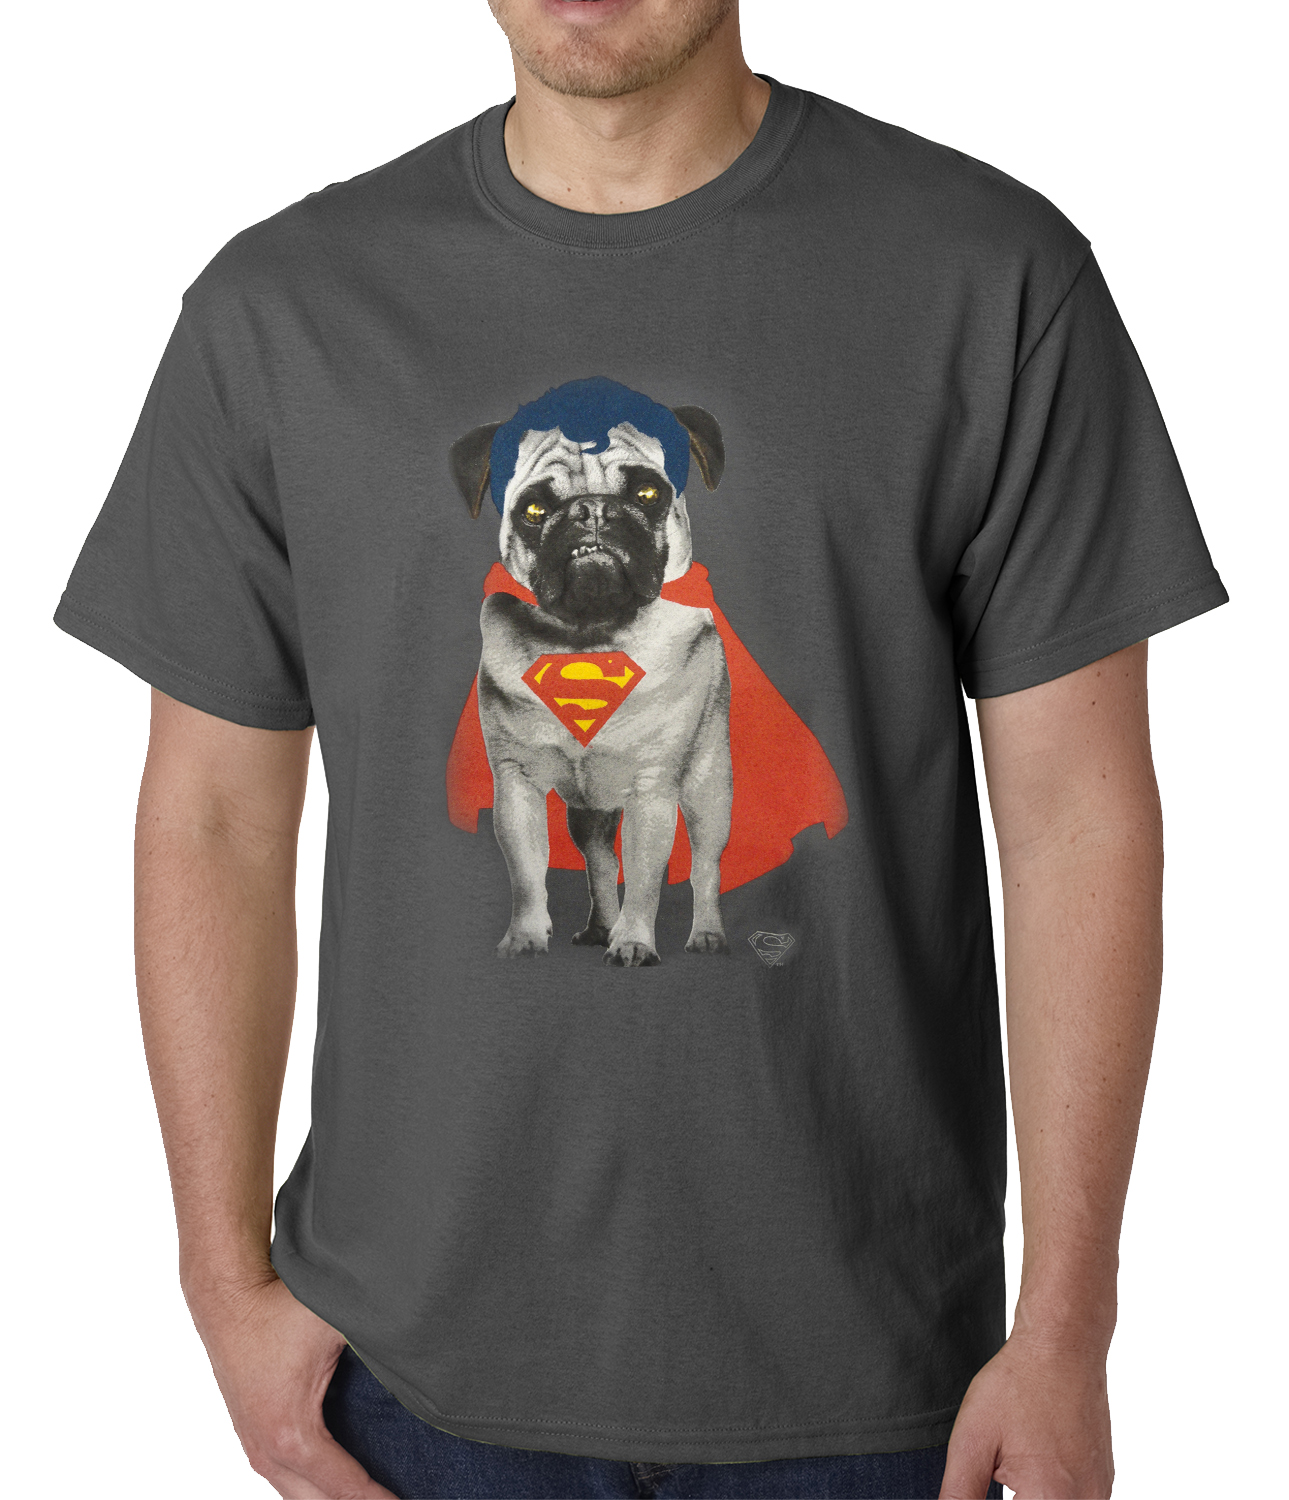 Our best friends and most faithful companions, dogs are as unique as their owners. Show your love for your favorite breed, whether it's Bulldogs, German Shepherds, Labradors, Pugs, or Rottweilers; We've got a dog t-shirt or sweatshirt for you! Love puppies?We've got you covered there too!